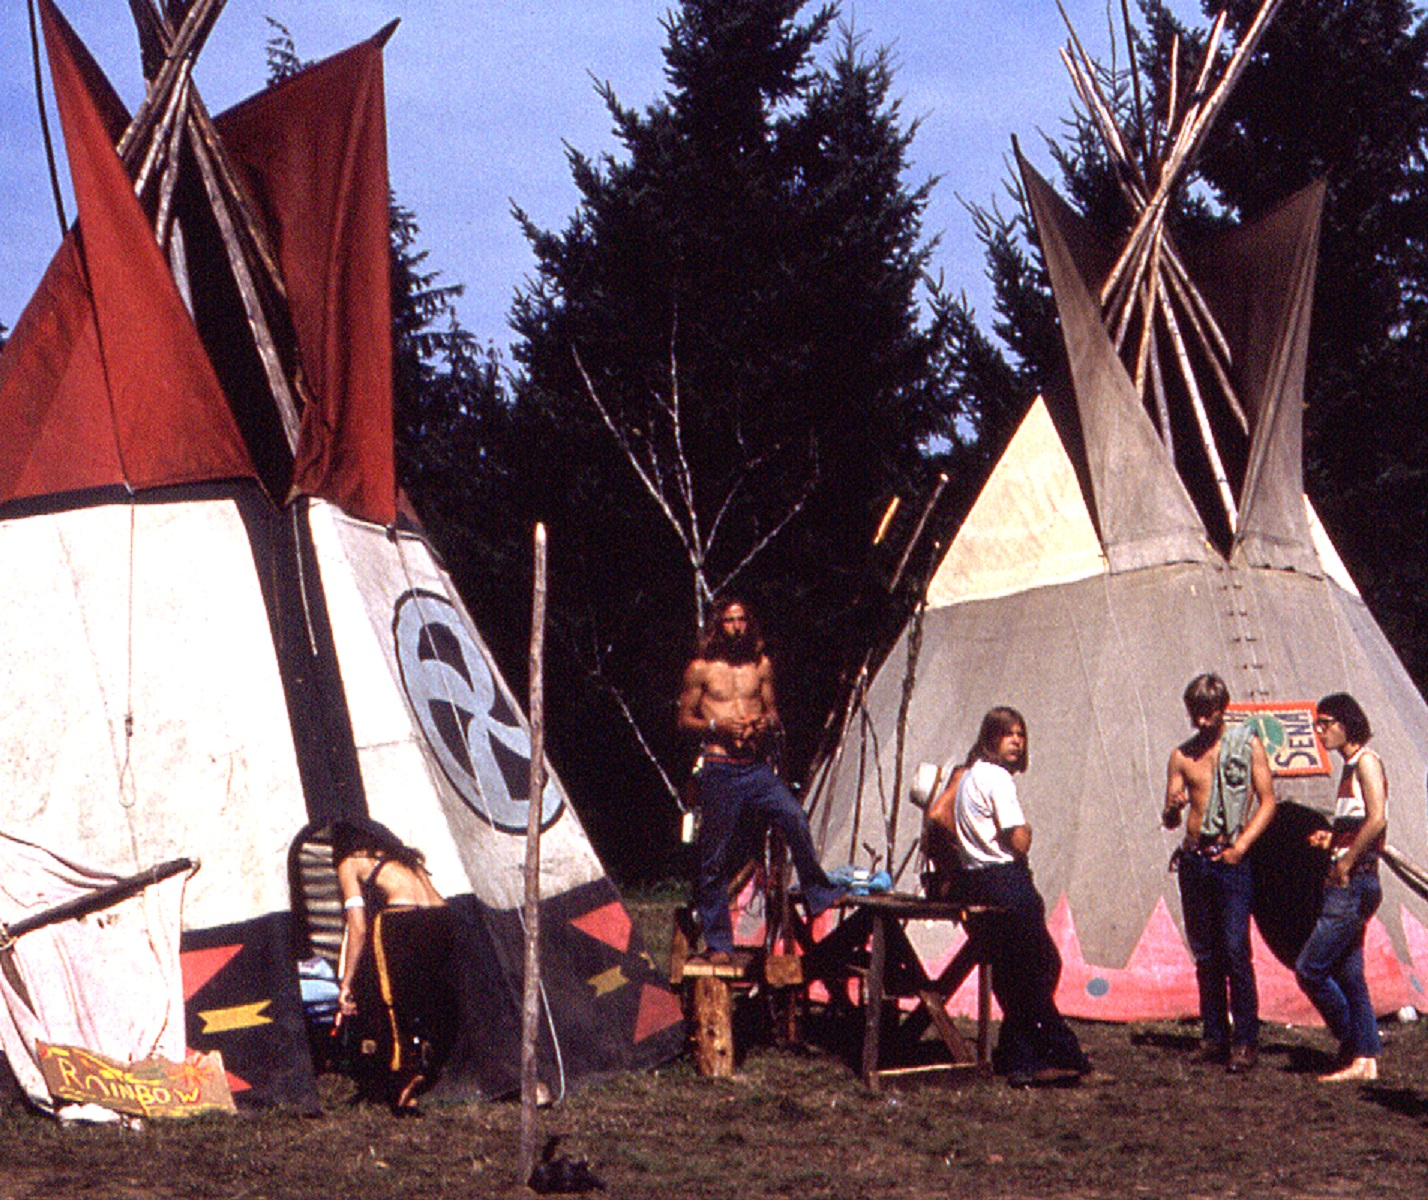 More TeePees - Vortex 1 - 1970 - McIver State Park